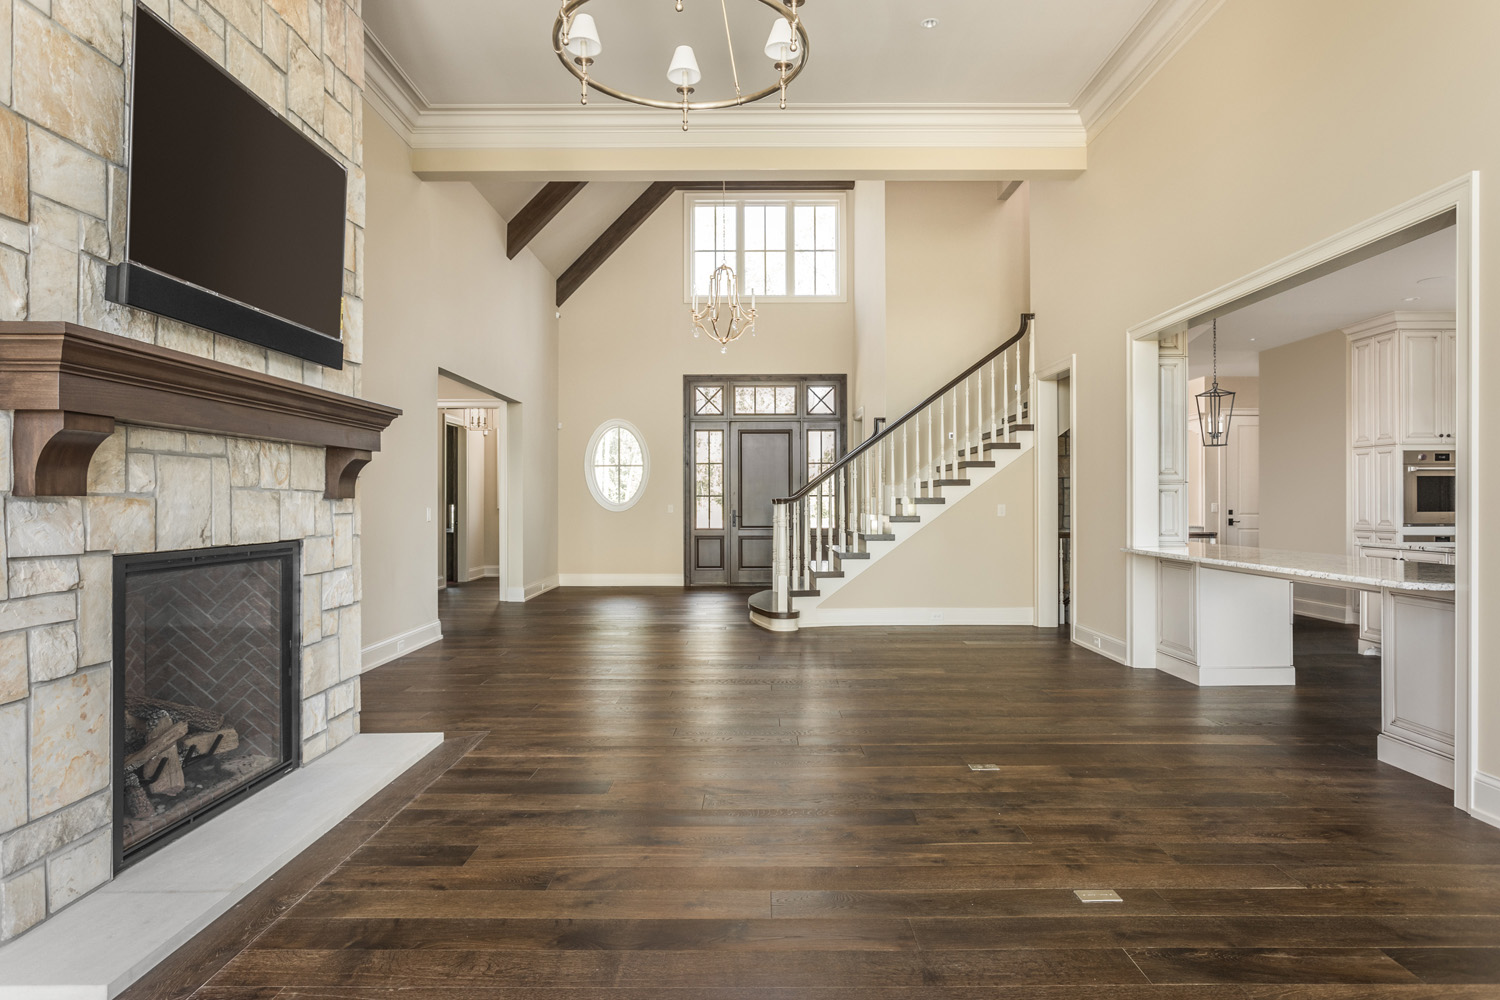 living room inside custom home with high ceilings, wooden floors, fireplace, and staircase